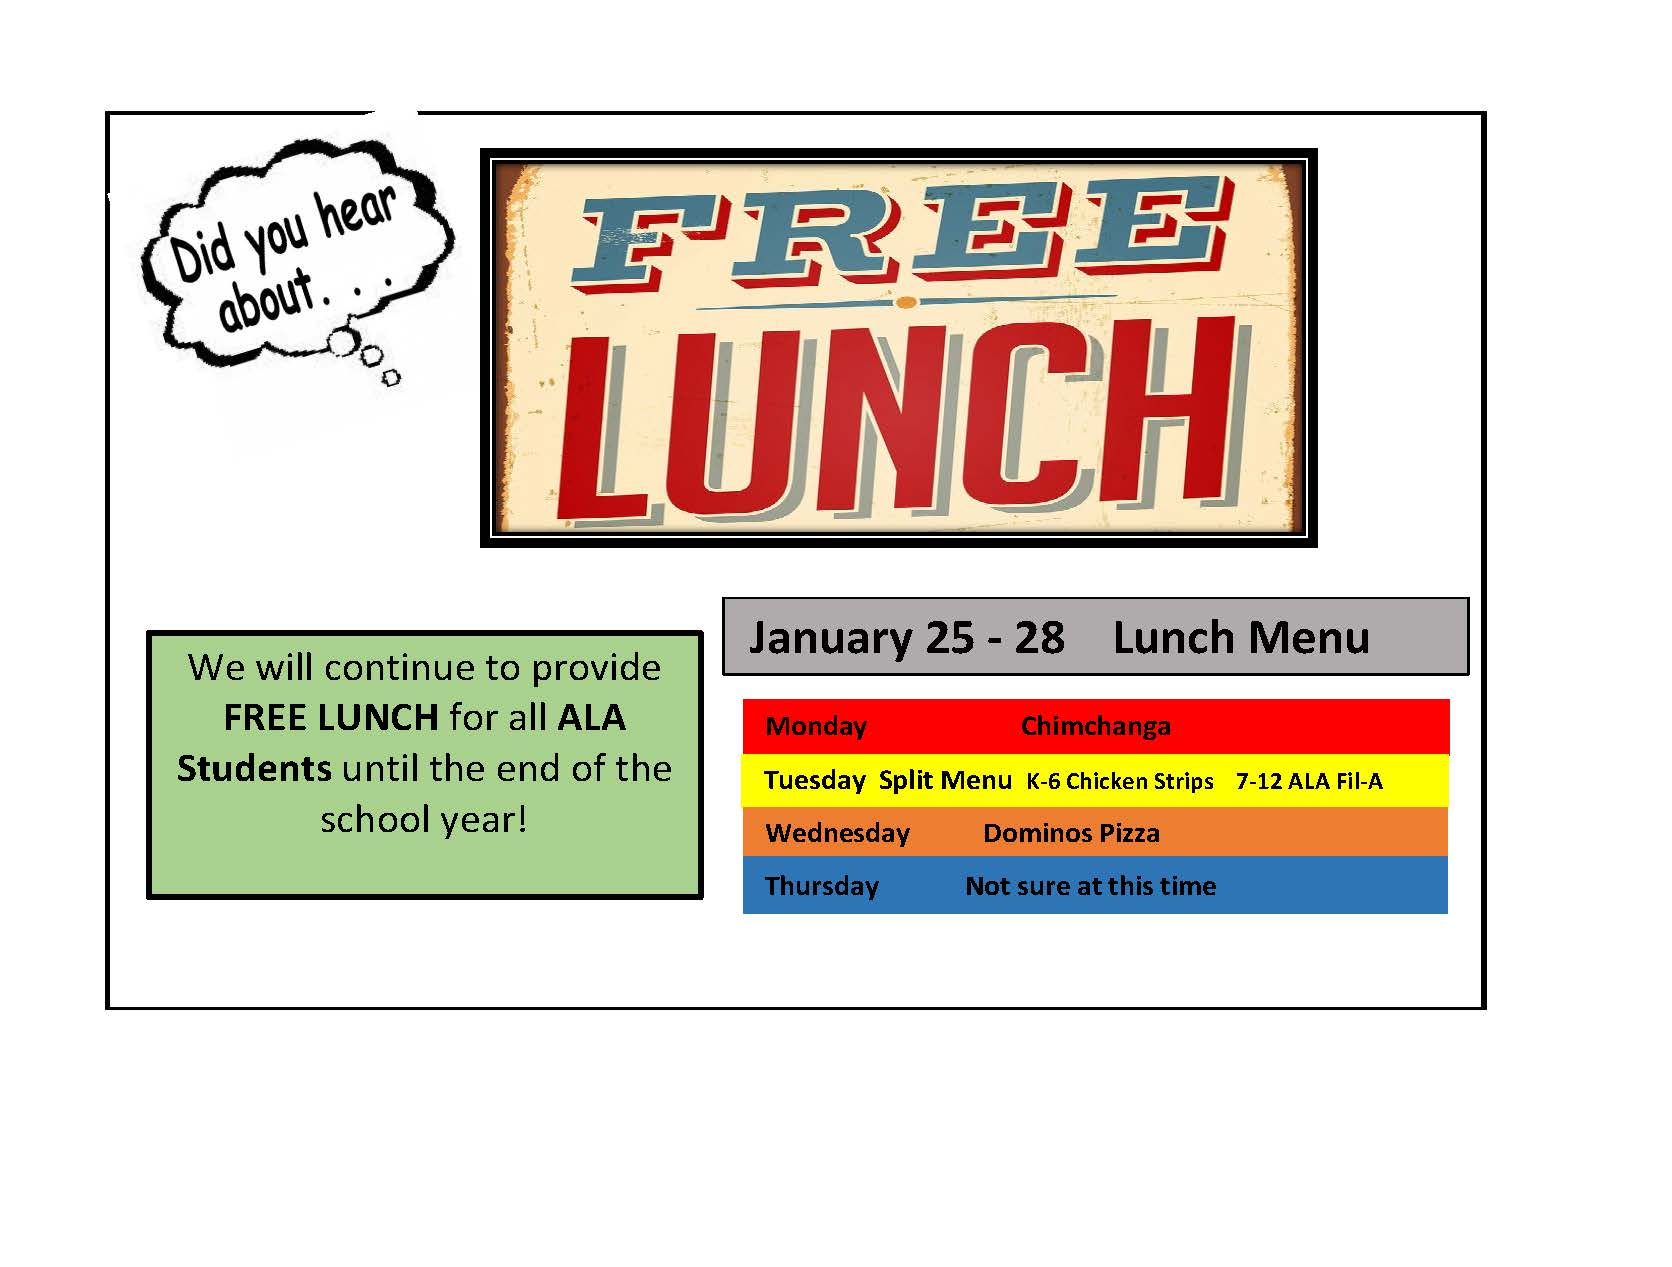 LUNCH MENU FOR JANUARY 25TH-28TH